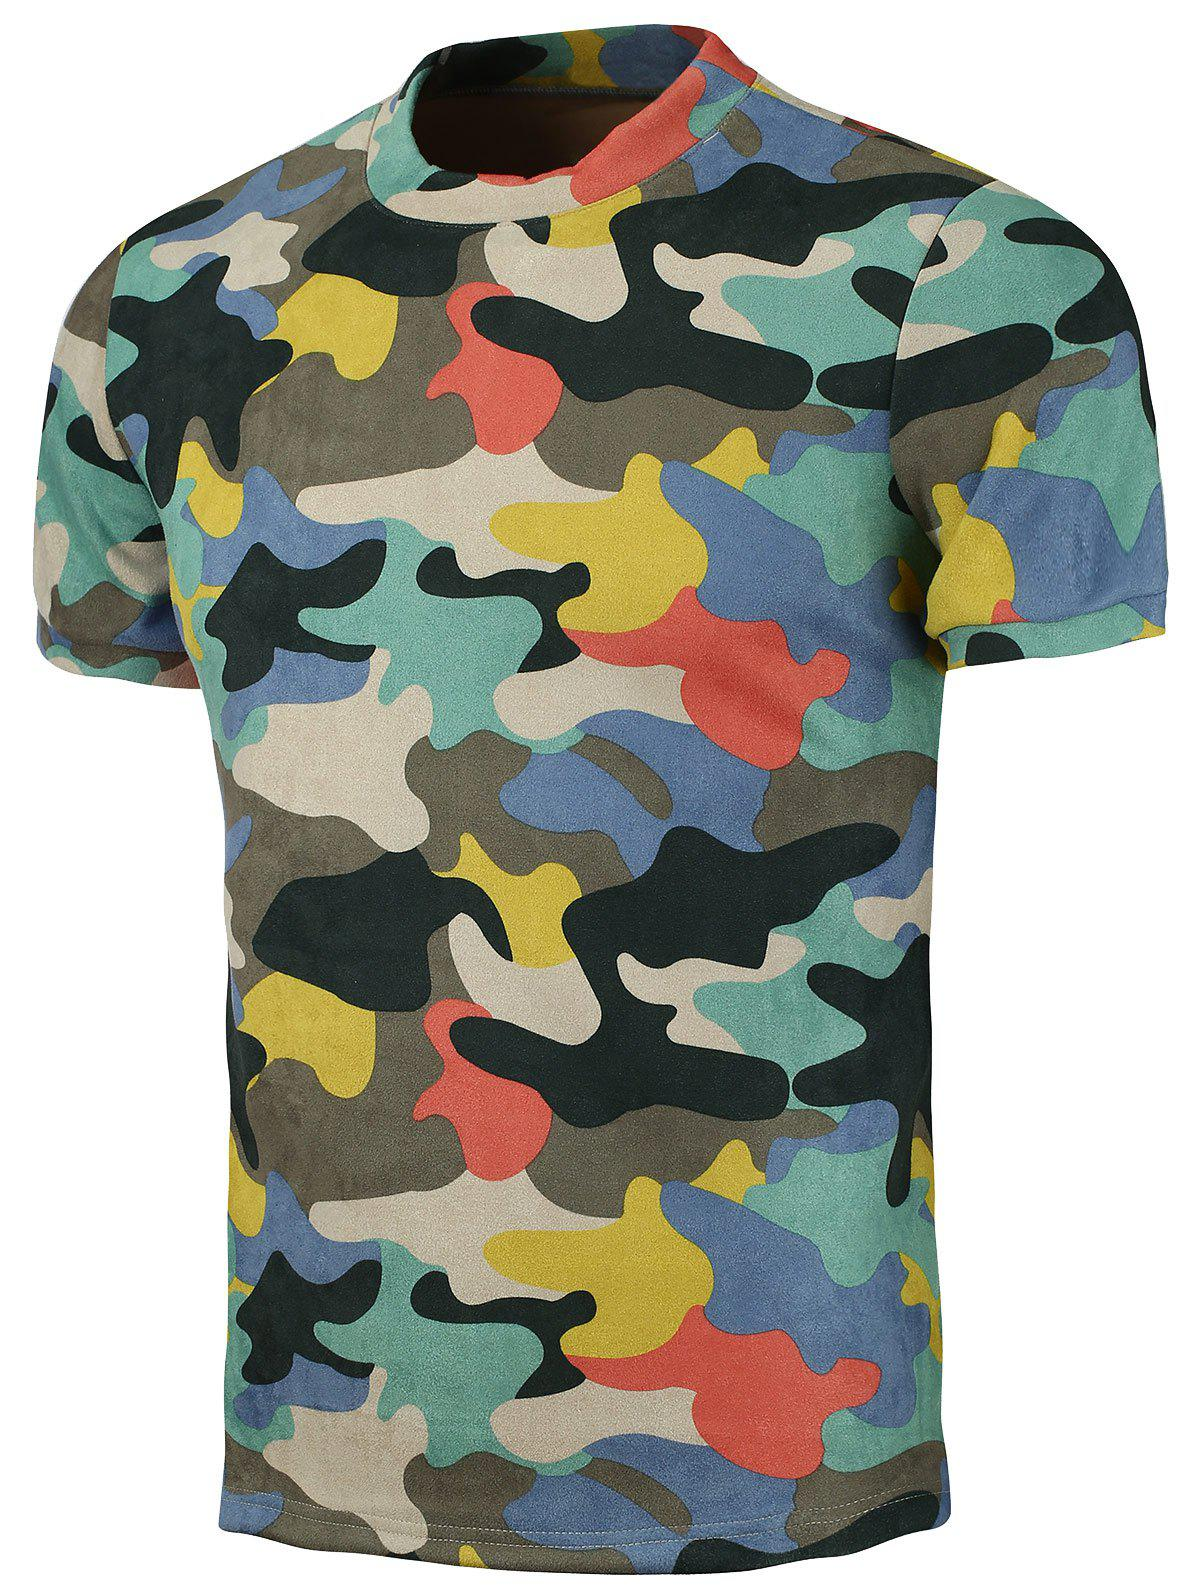 Camo Crew Neck Short Sleeve T-Shirt - COLORMIX XL